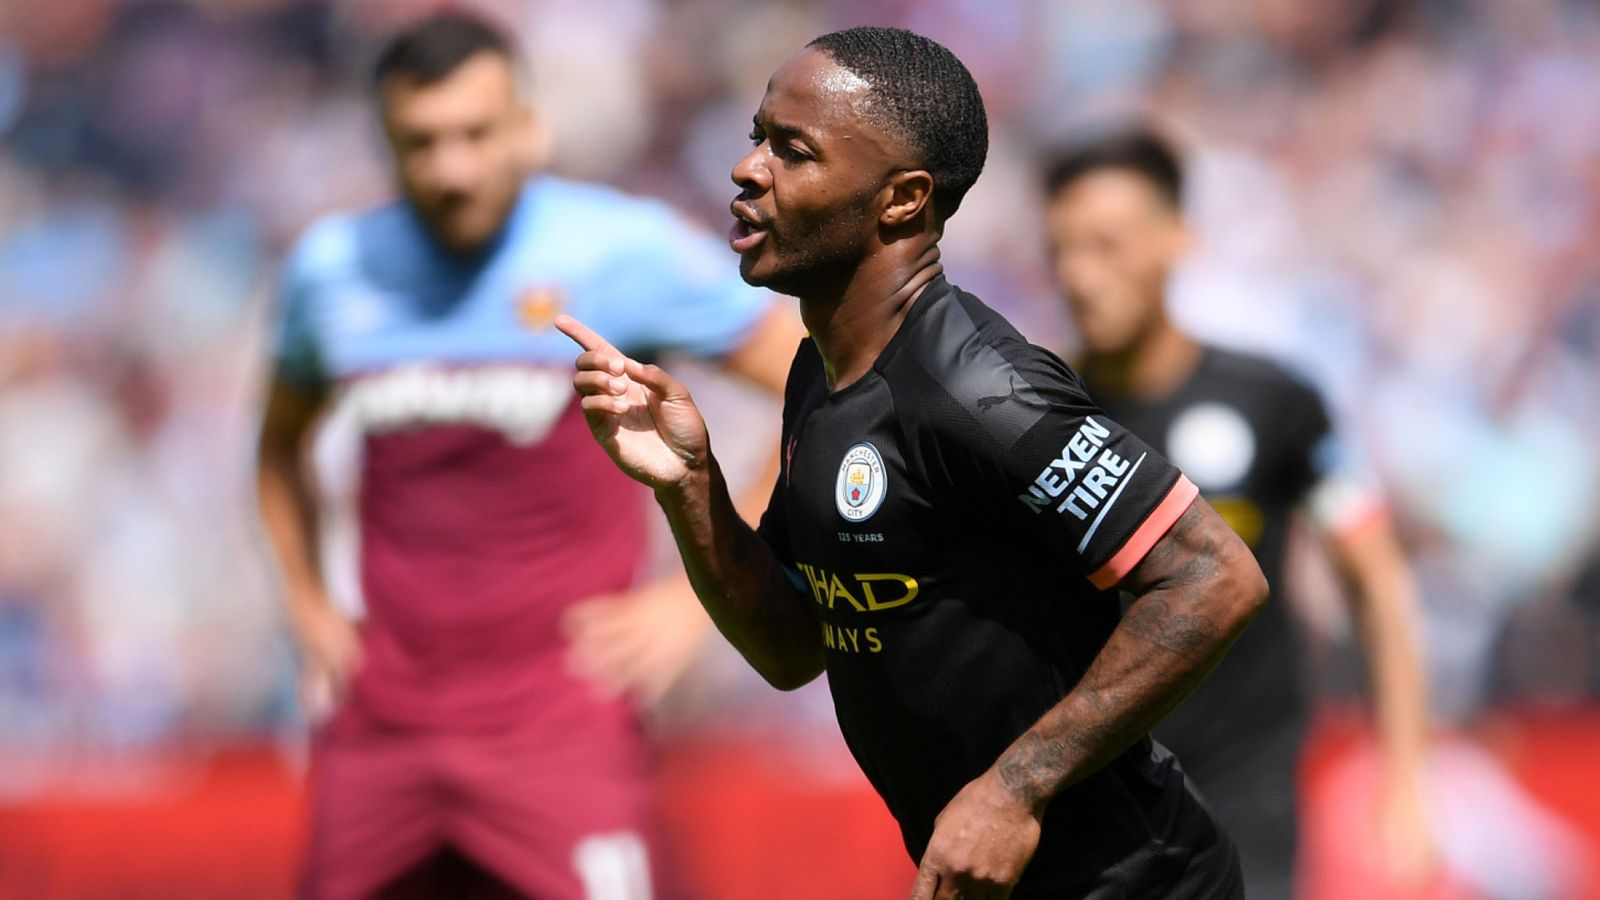 Sterling scored the only hattrick on opening weekend. (PHOTO/COURTESY)